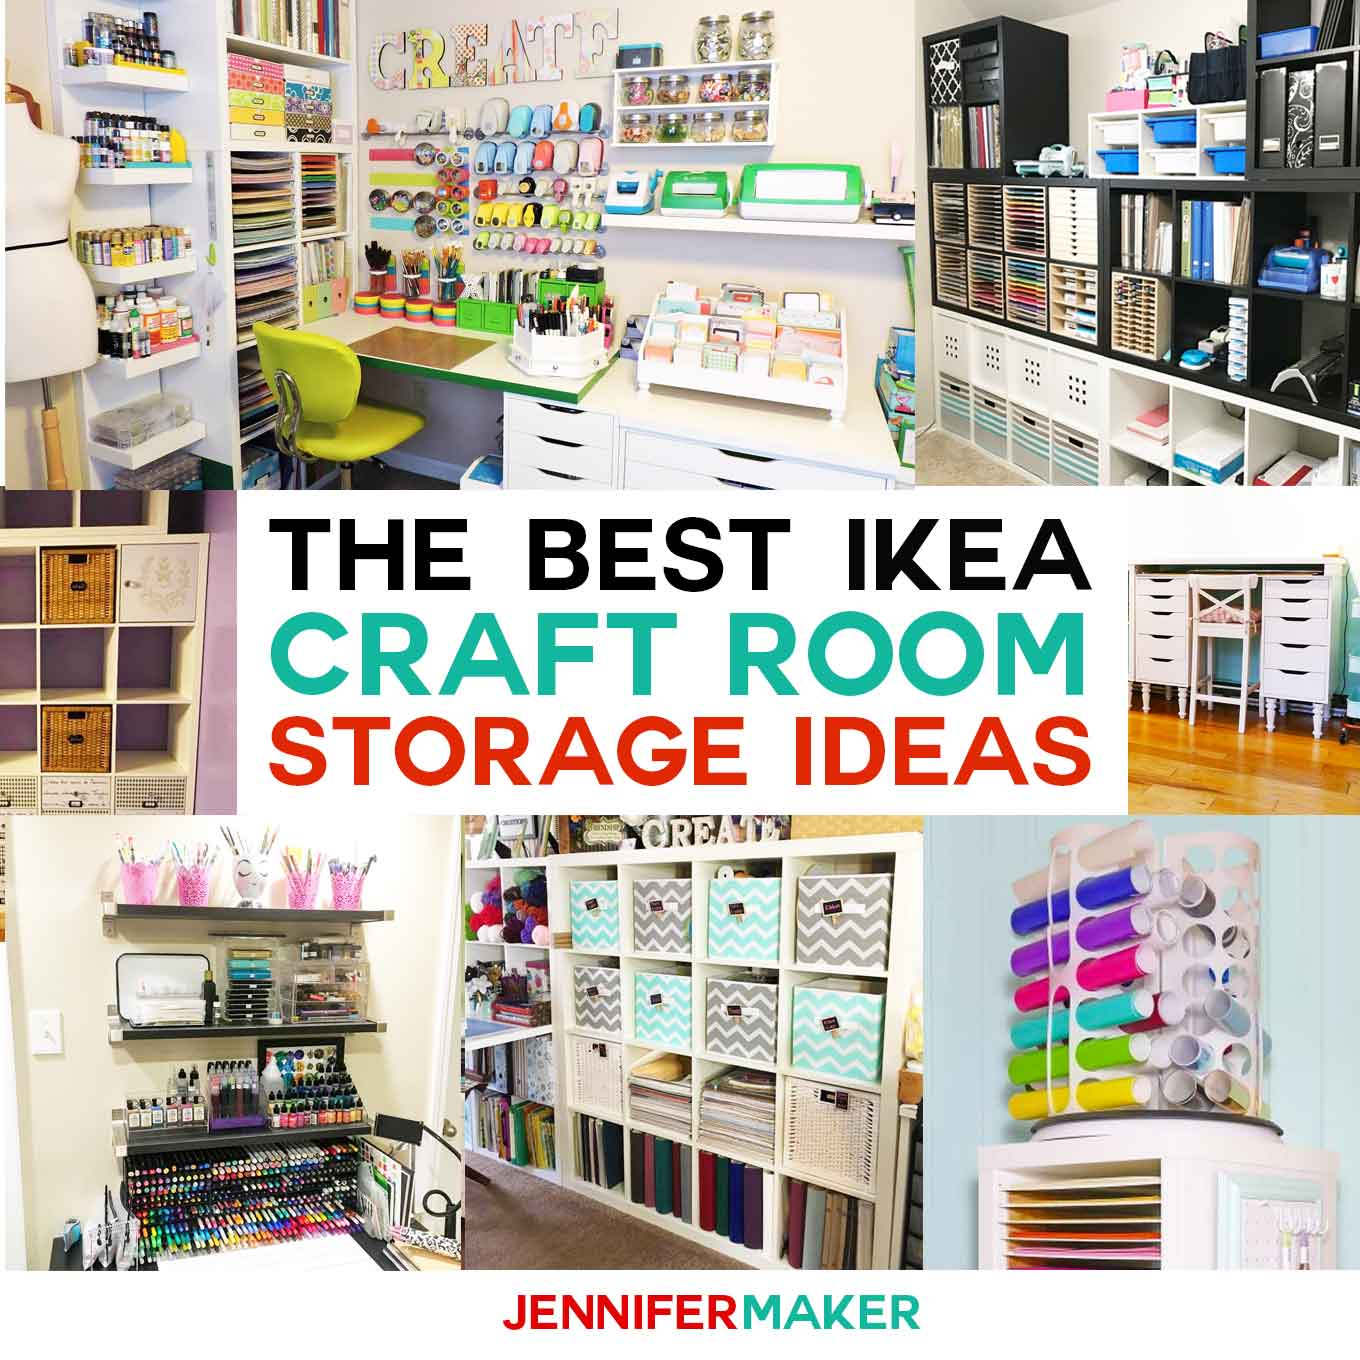 The Best IKEA Craft Room Storage Shelves & Ideas - Jennifer Maker